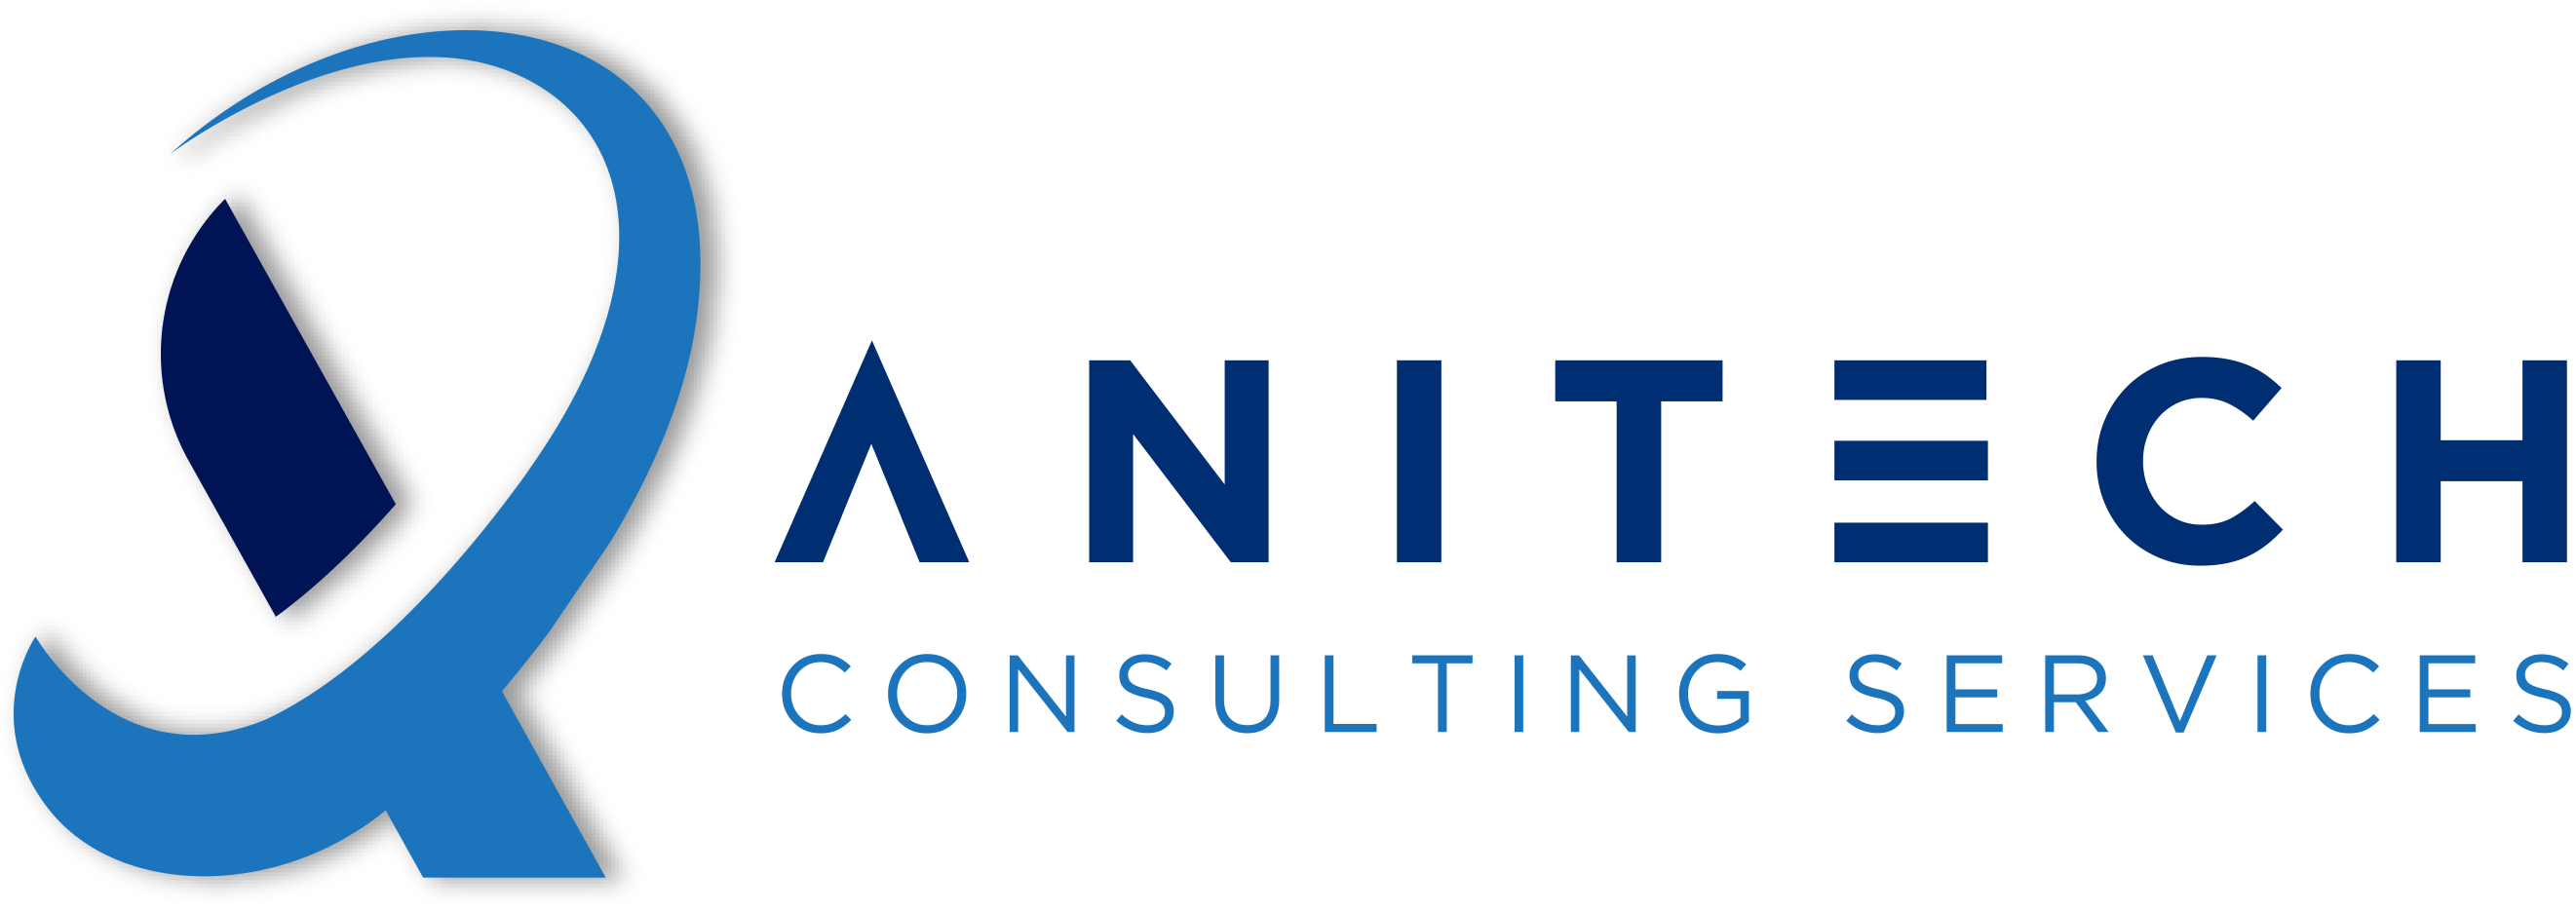 Anitech Consulting Services Pvt Ltd.